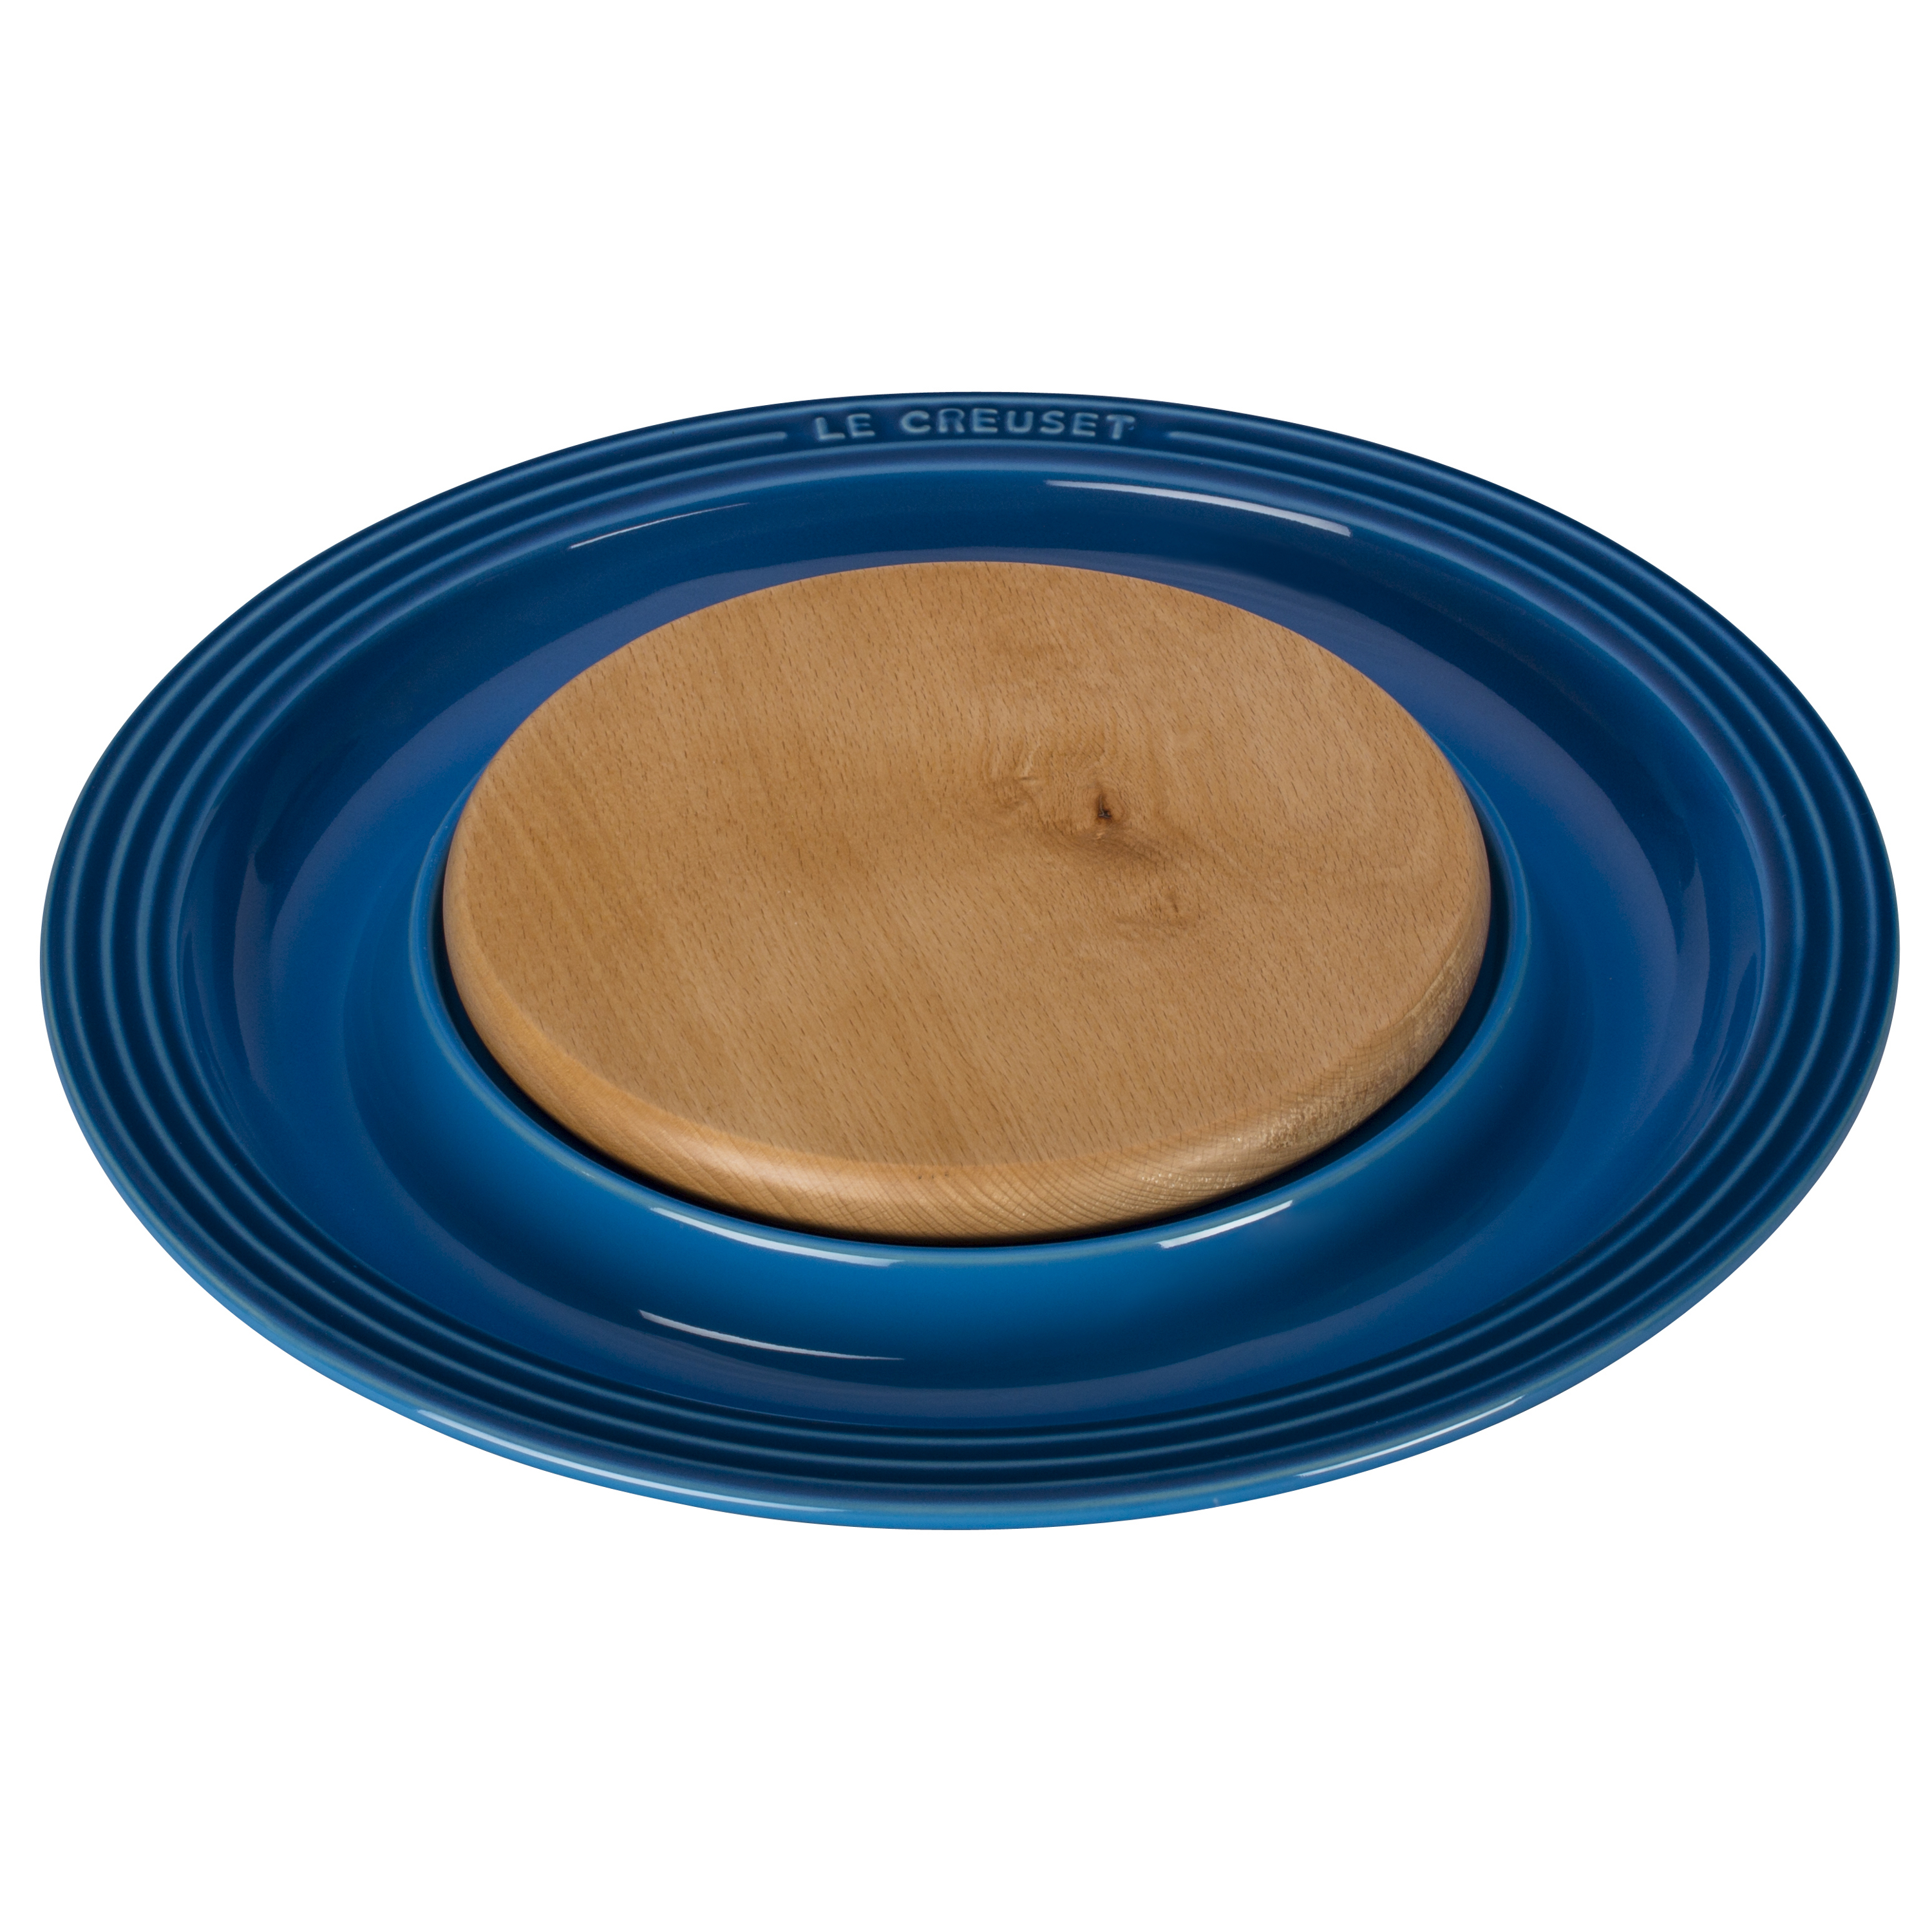 Le Creuset Marseille Blue Stoneware Cheese Server with Beechwood Cutting Board